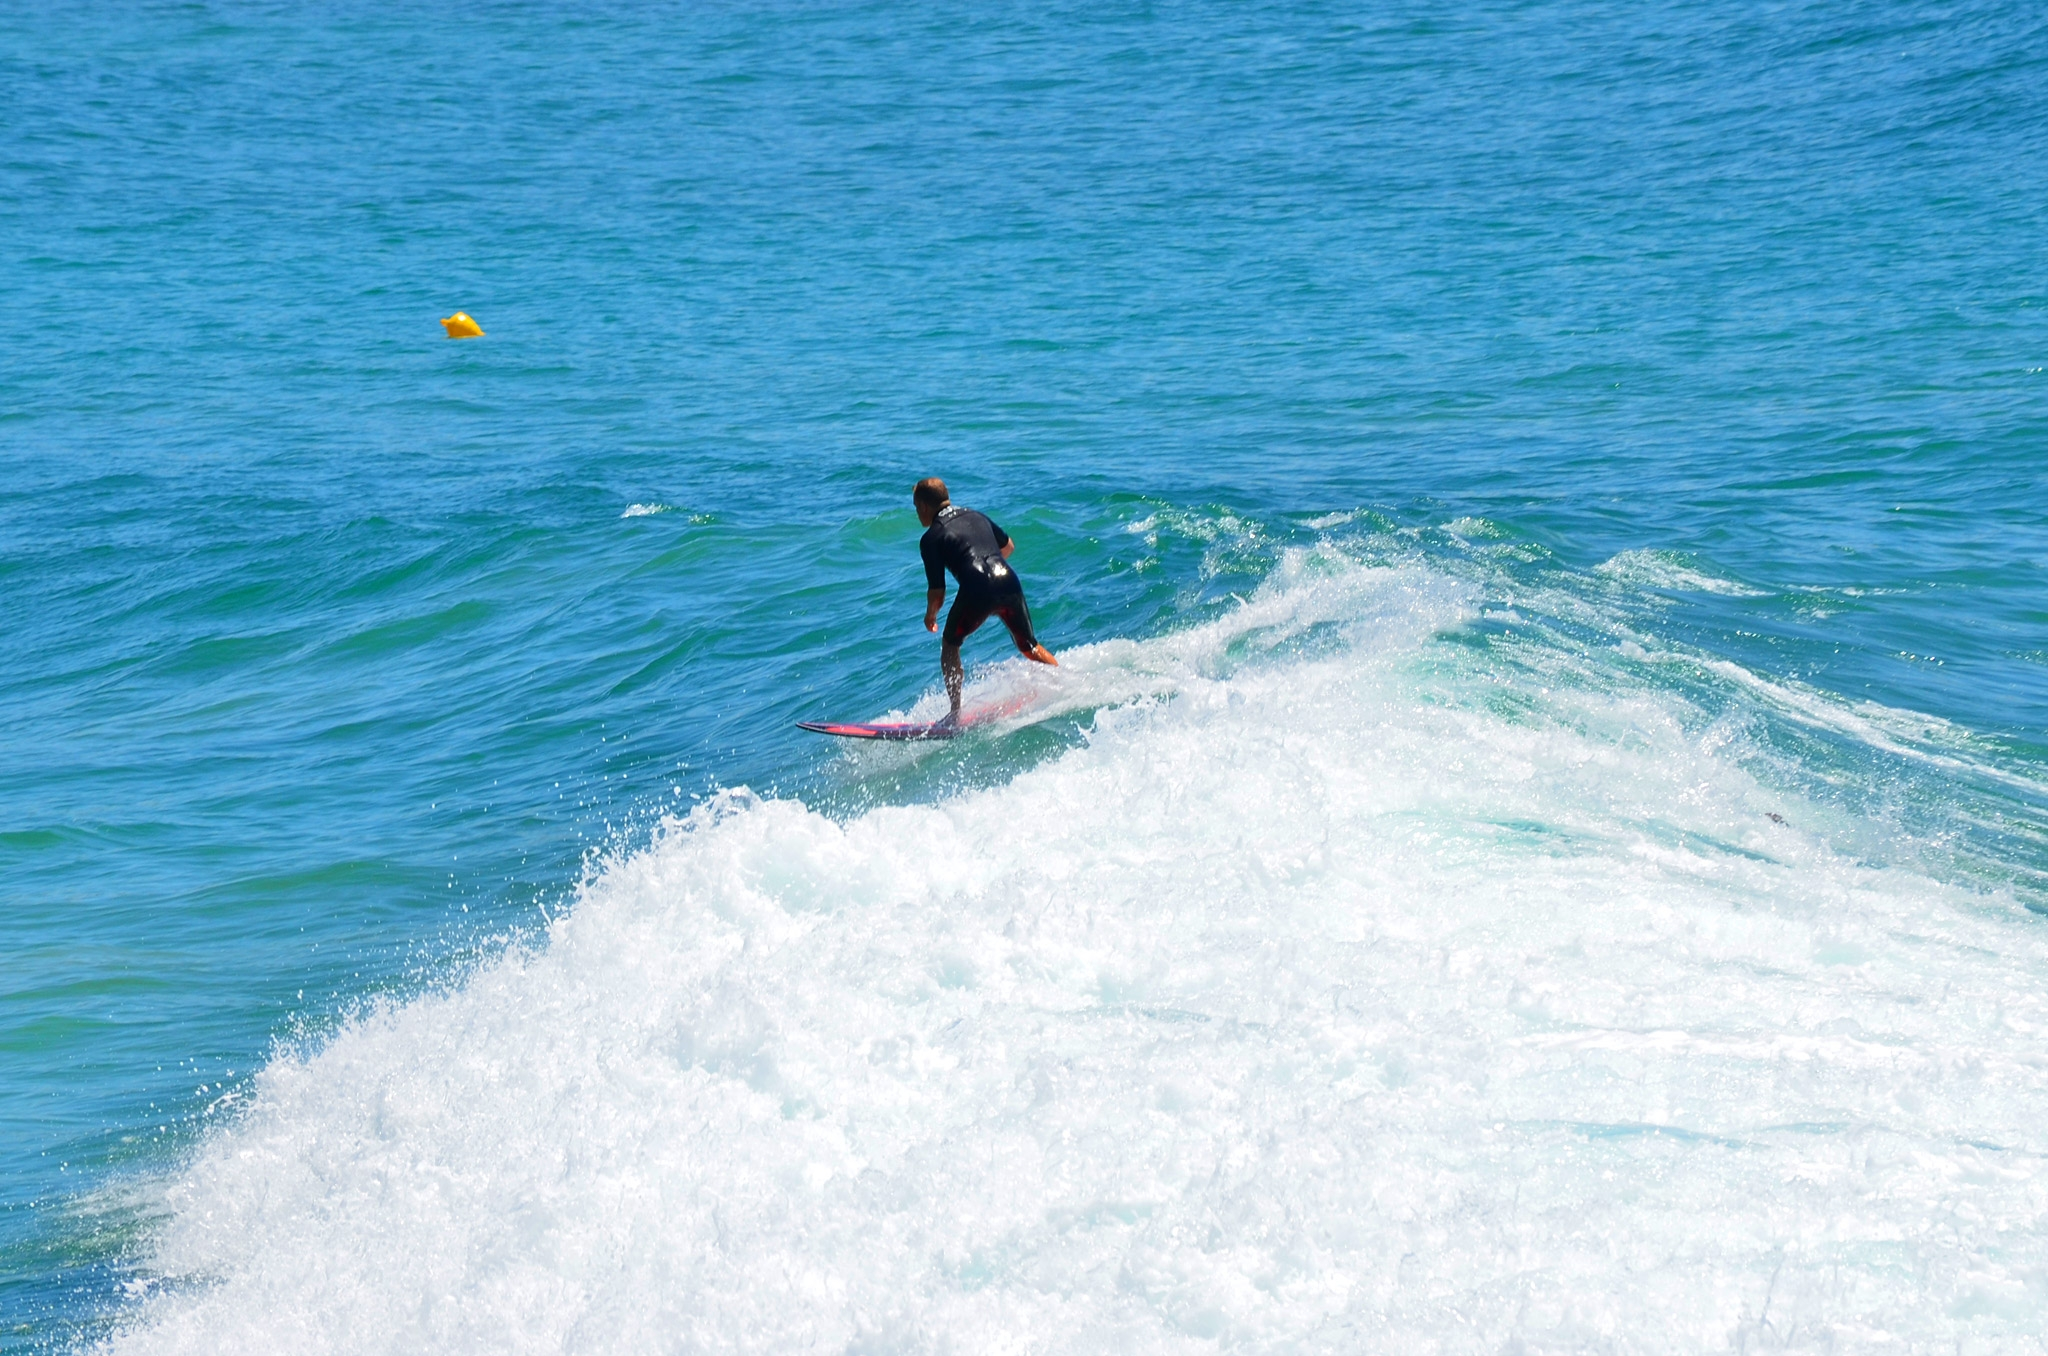 Time for a Surf - Image �2014 ManlyAustralia.com